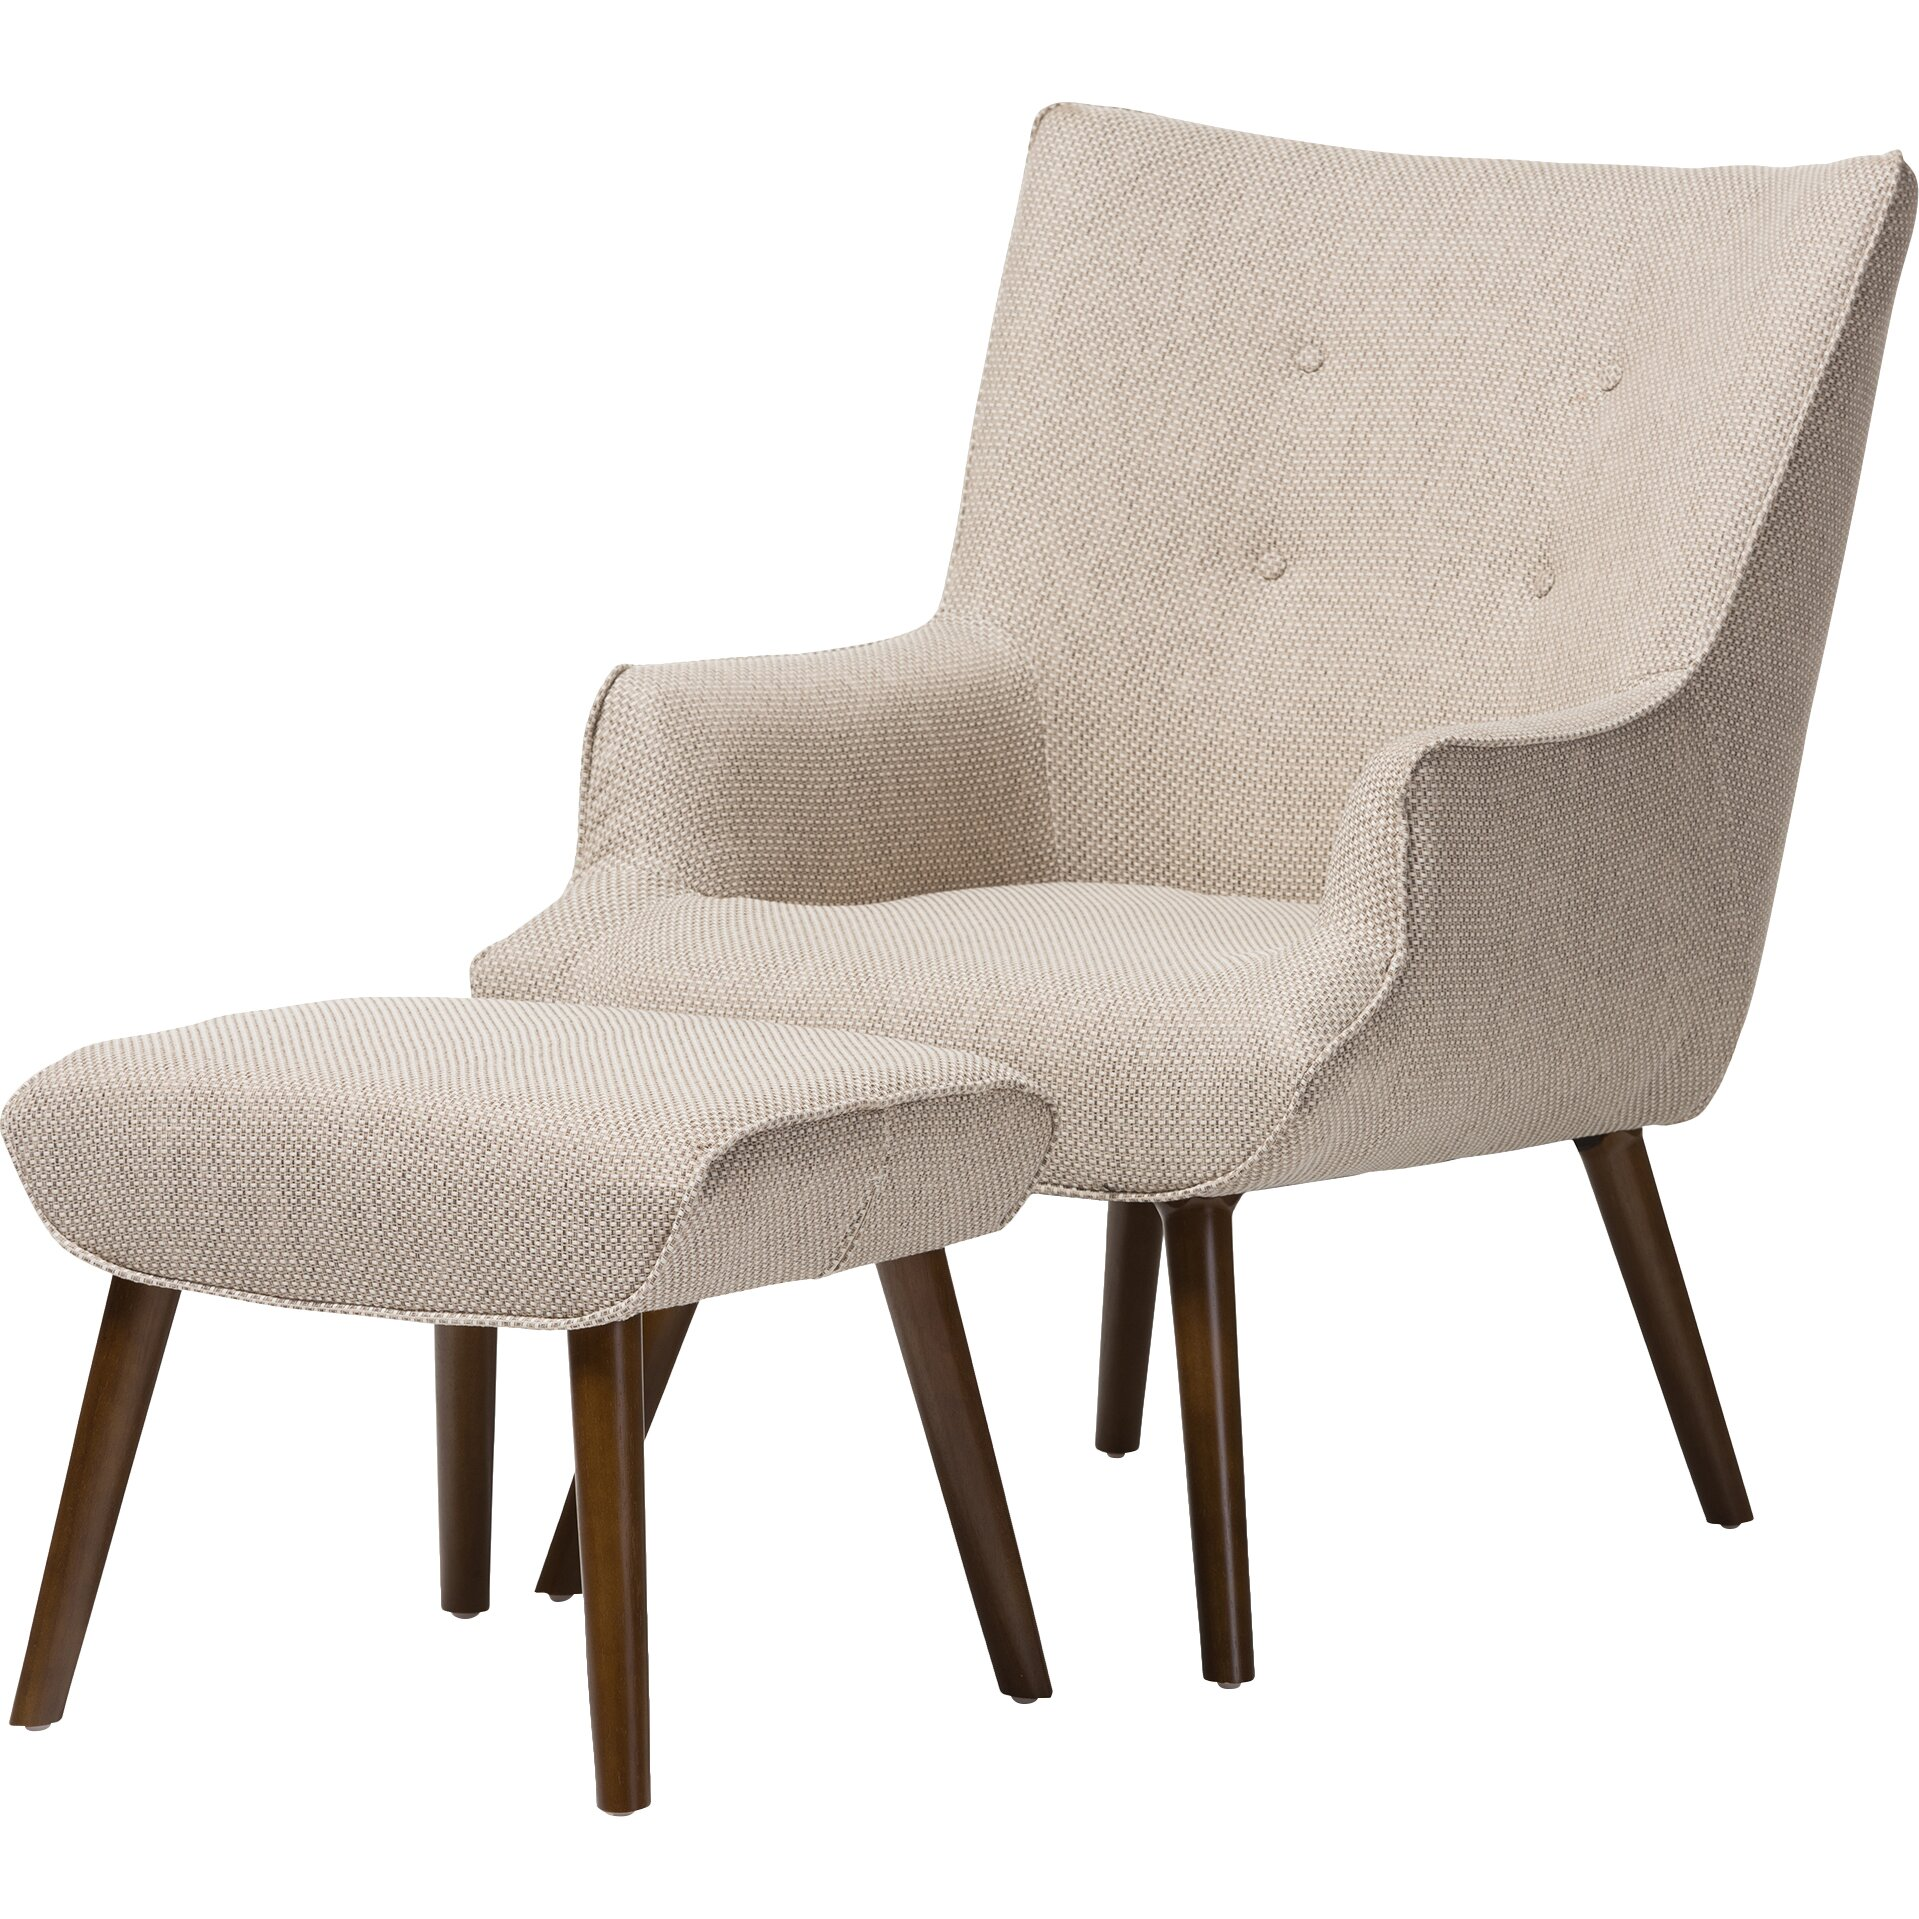 Baxton Studio Elena Armchair and Ottoman | Wayfair